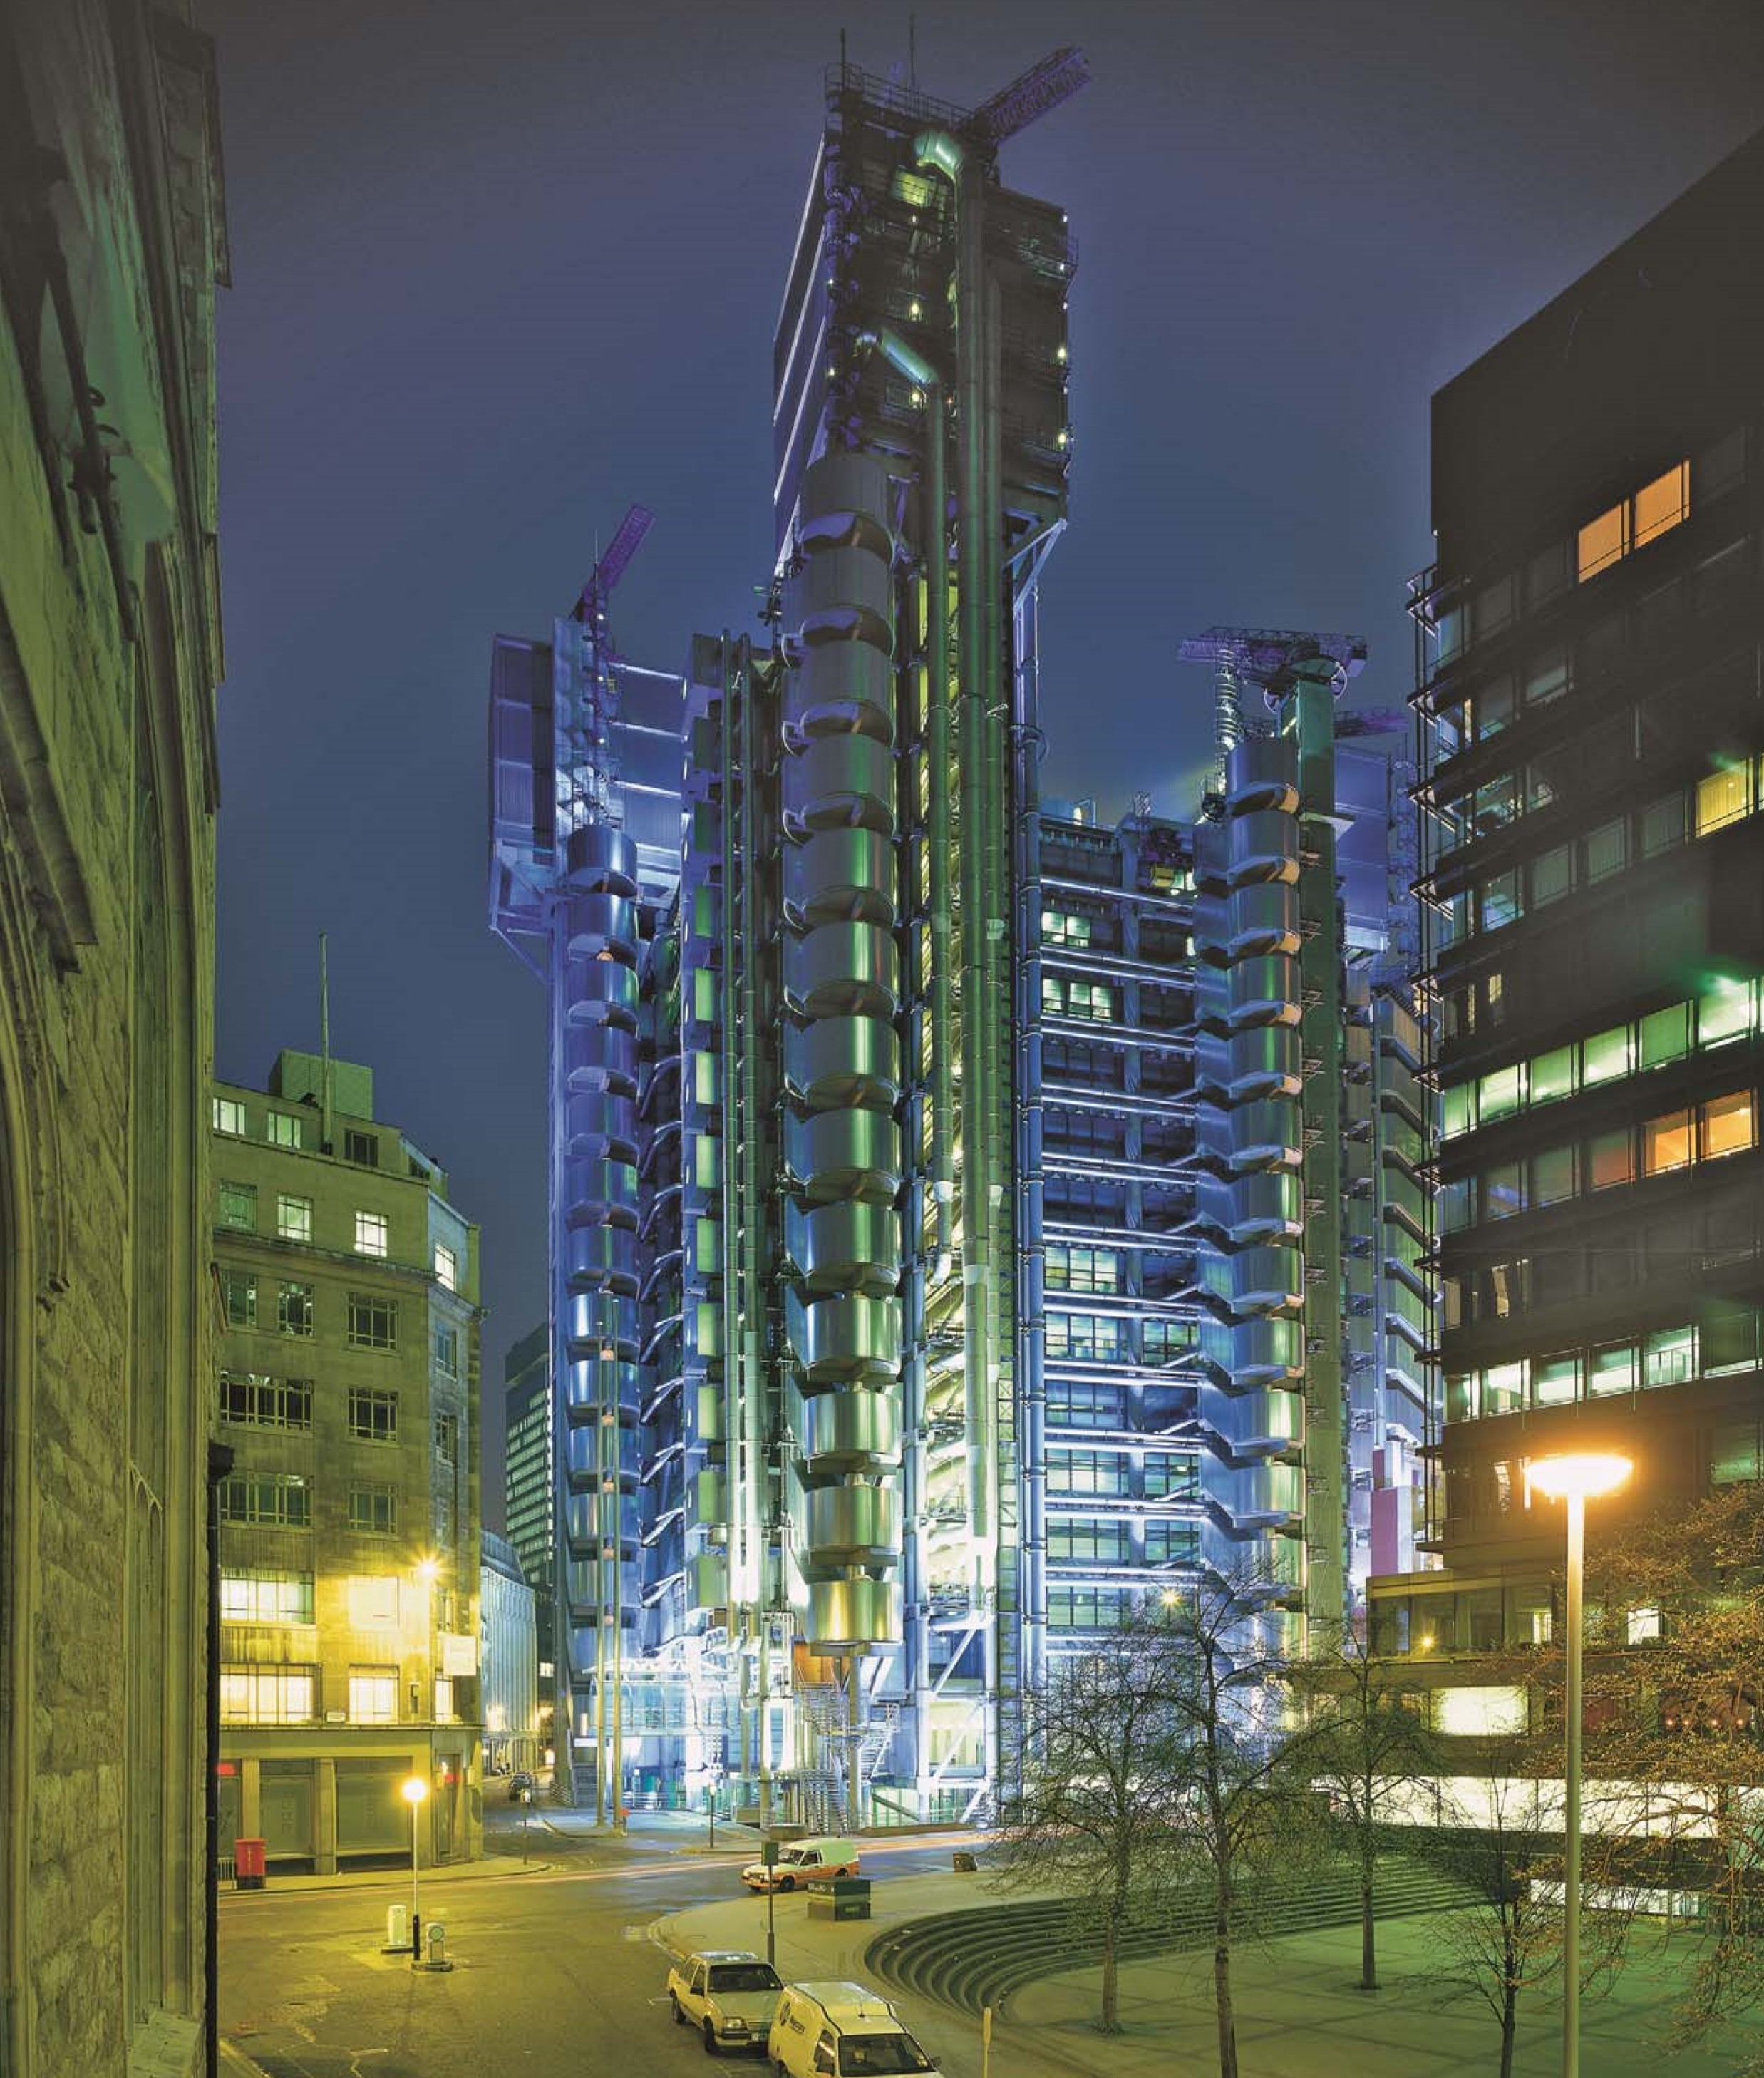 Lloyds of London night.jpg